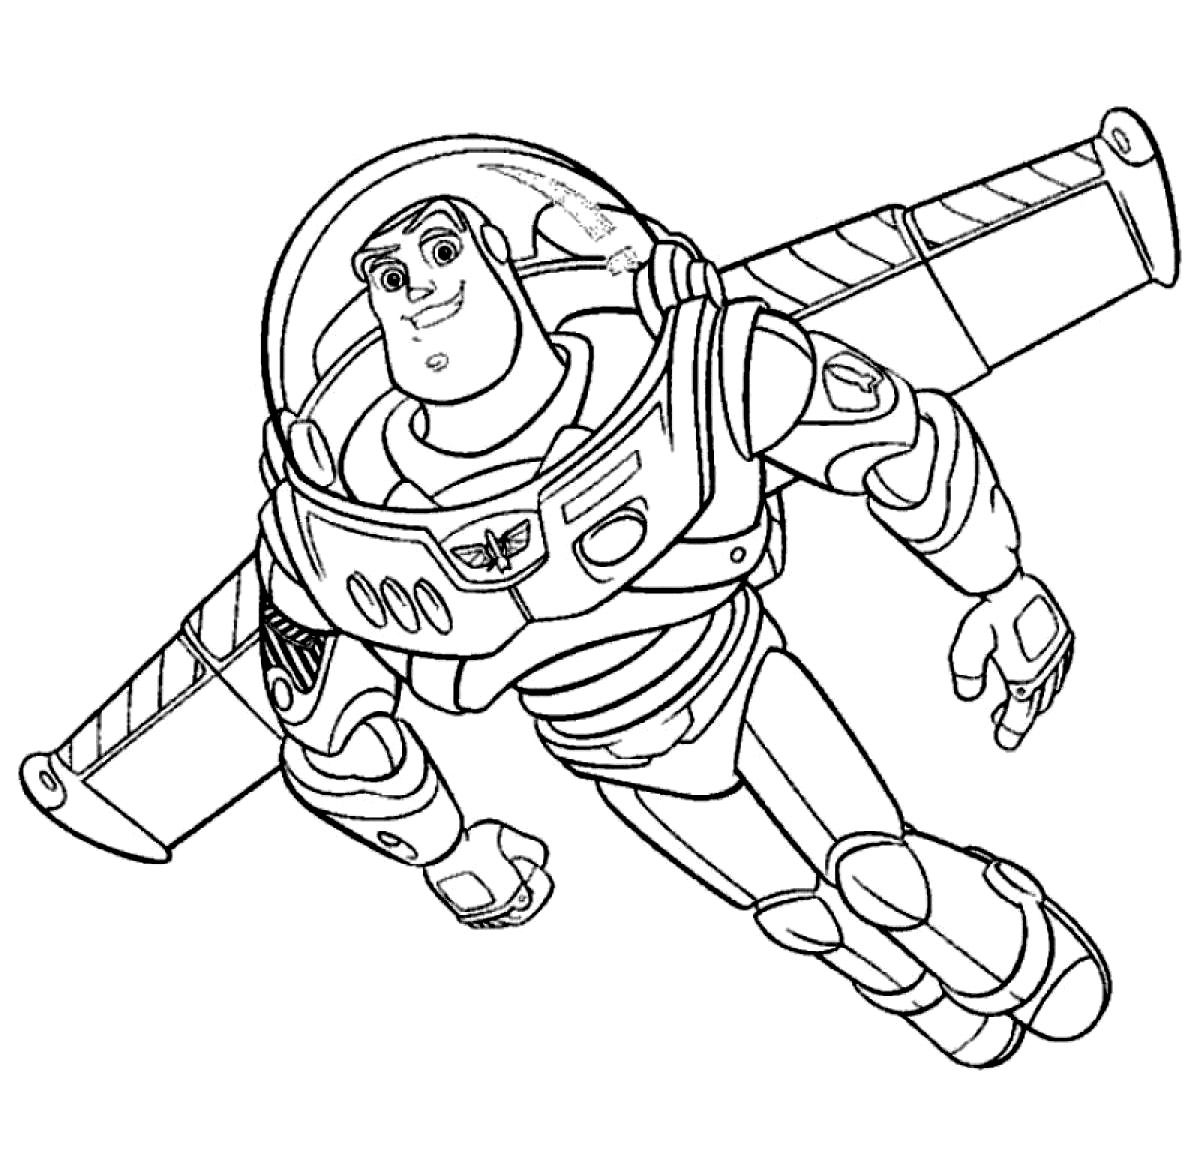 Free Printable Buzz Lightyear Coloring Pages For Kids | Dibujos para ...